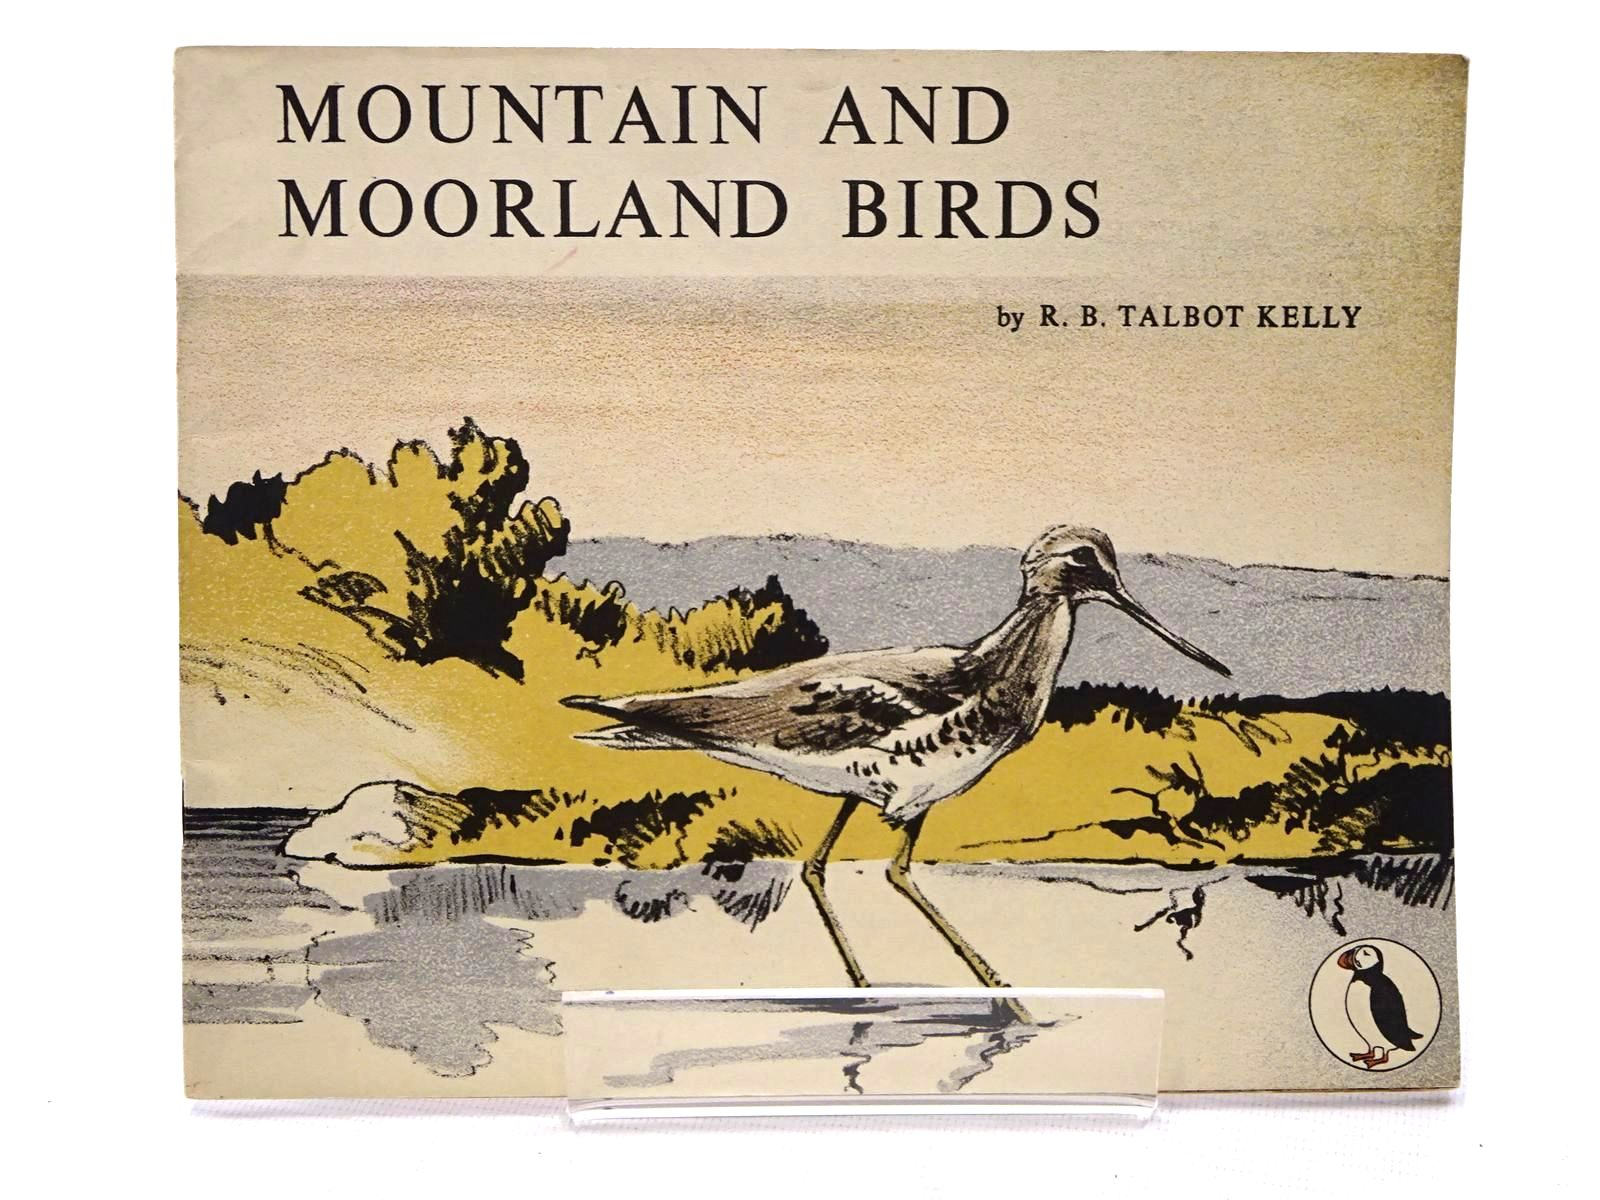 Photo of MOUNTAIN AND MOORLAND BIRDS written by Kelly, R.B. Talbot illustrated by Kelly, R.B. Talbot published by Penguin (STOCK CODE: 1610637)  for sale by Stella & Rose's Books